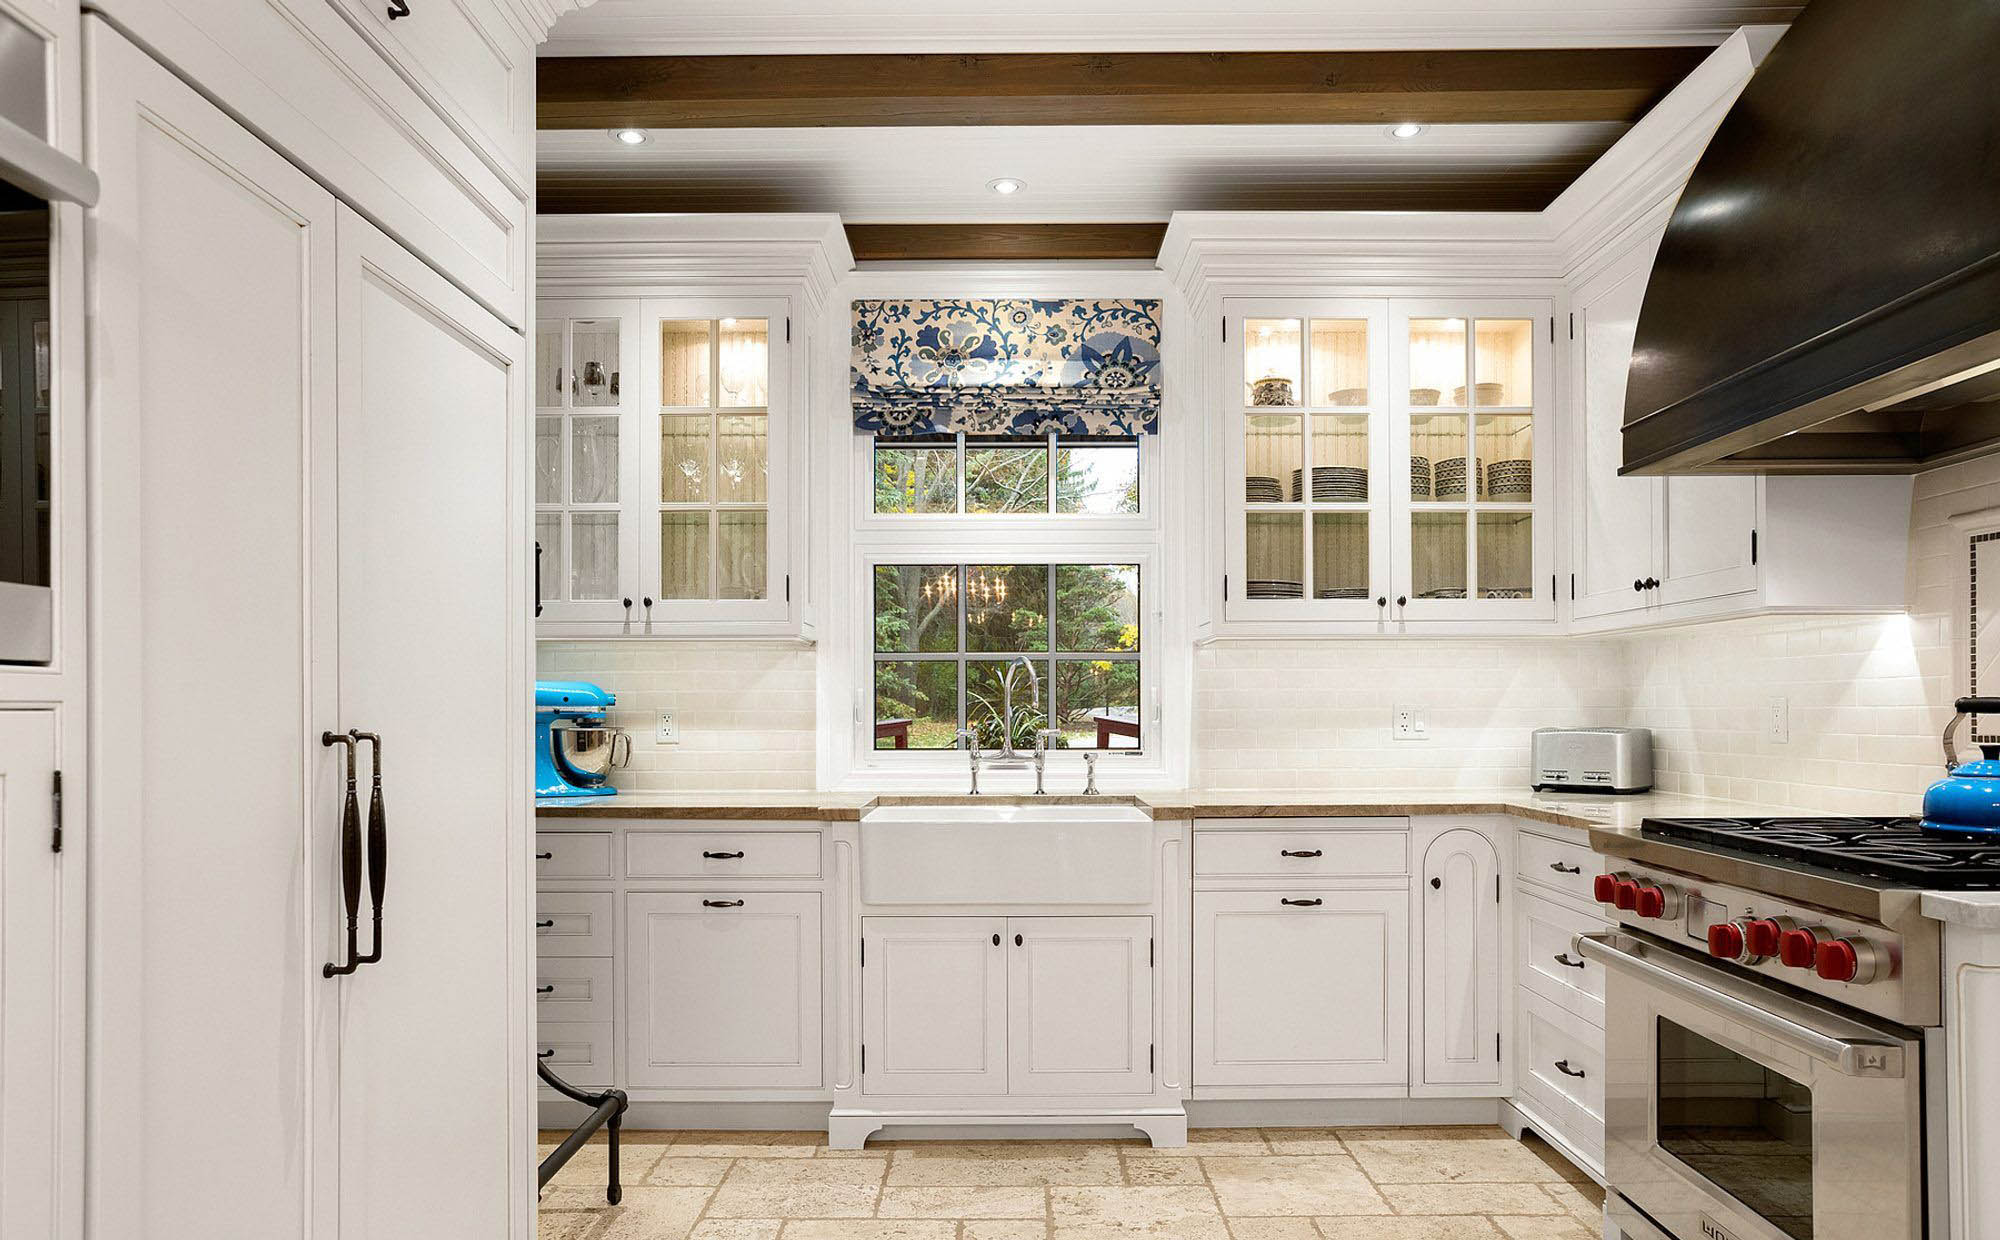 country style kitchen with a white farmhouse sink and white cabinets, exposed wood ceiling beams, stainless wolf appliances, built in refrigerator